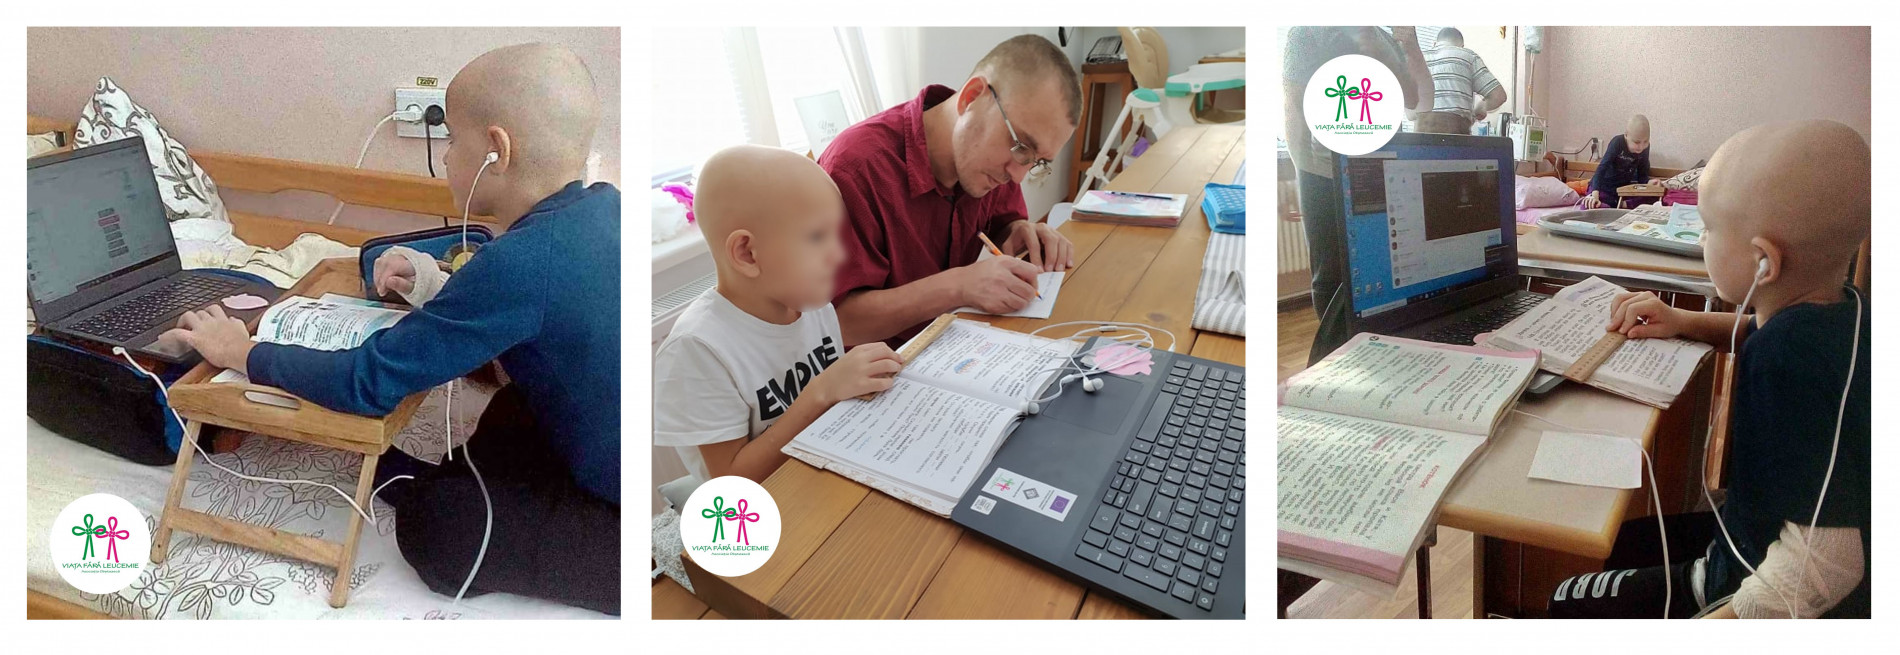 Enabling online education for young cancer patients in Moldova